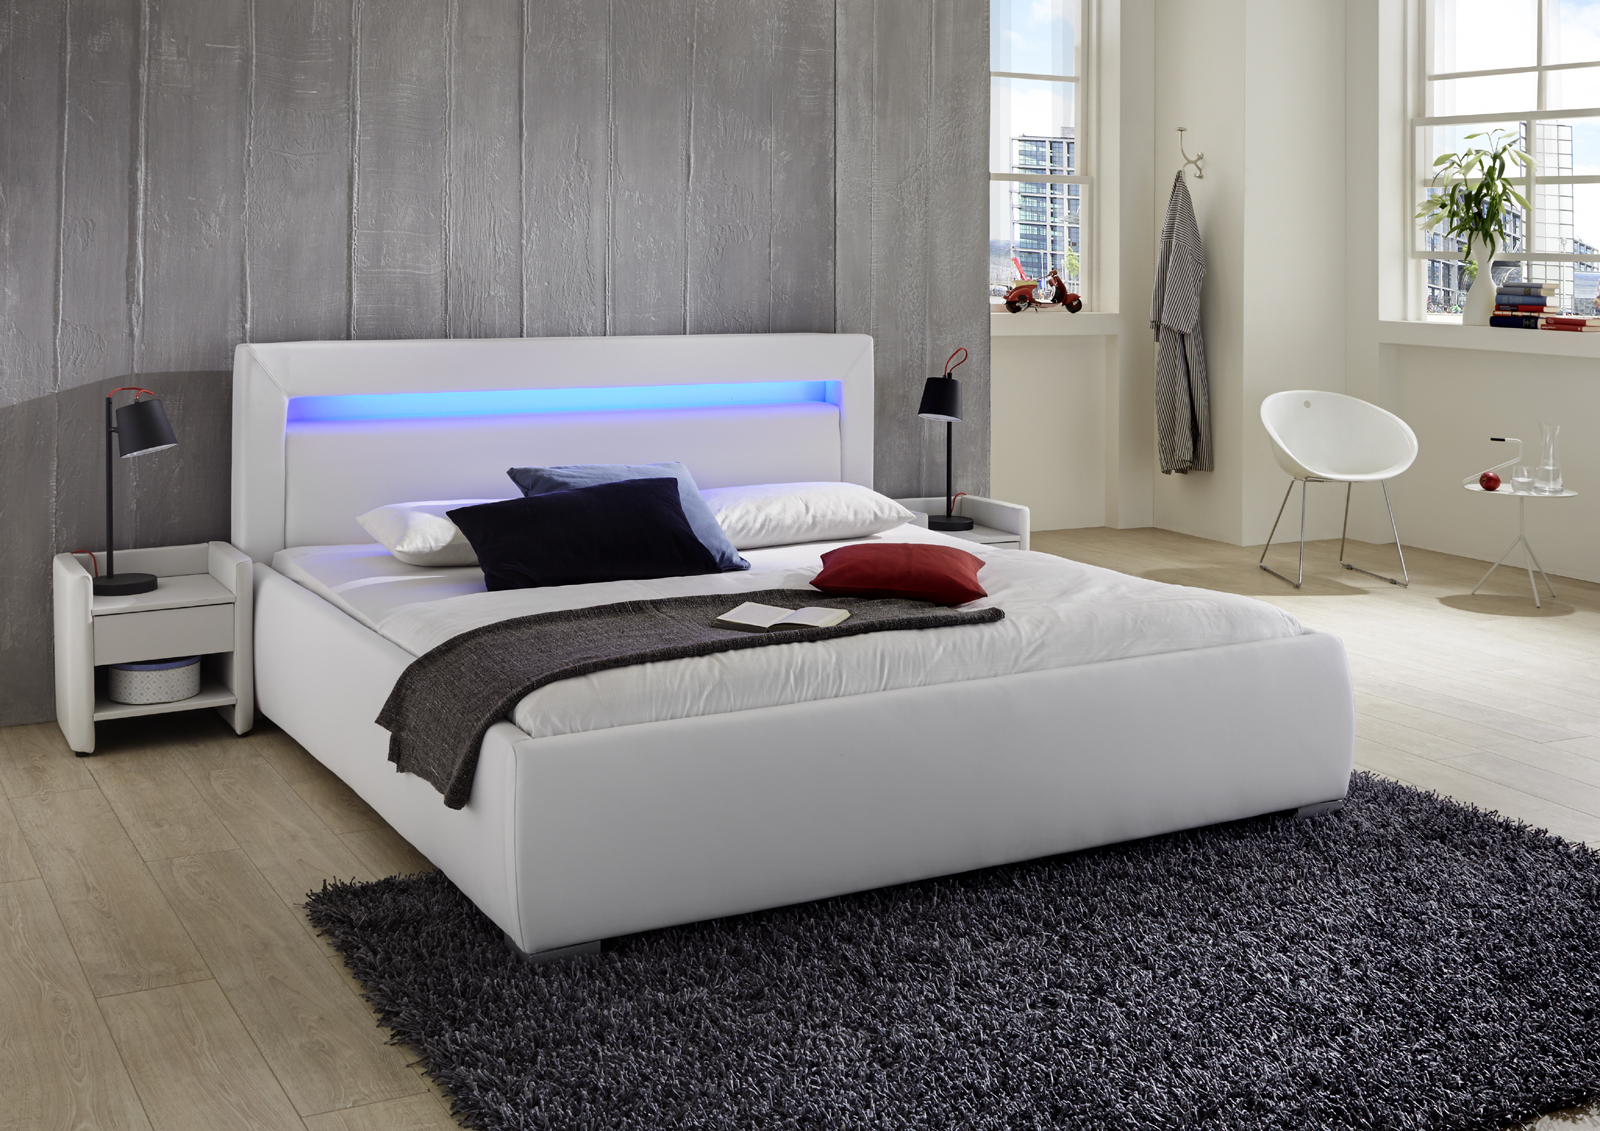 sam polsterbett 120 x 200 cm wei lumina g nstig. Black Bedroom Furniture Sets. Home Design Ideas